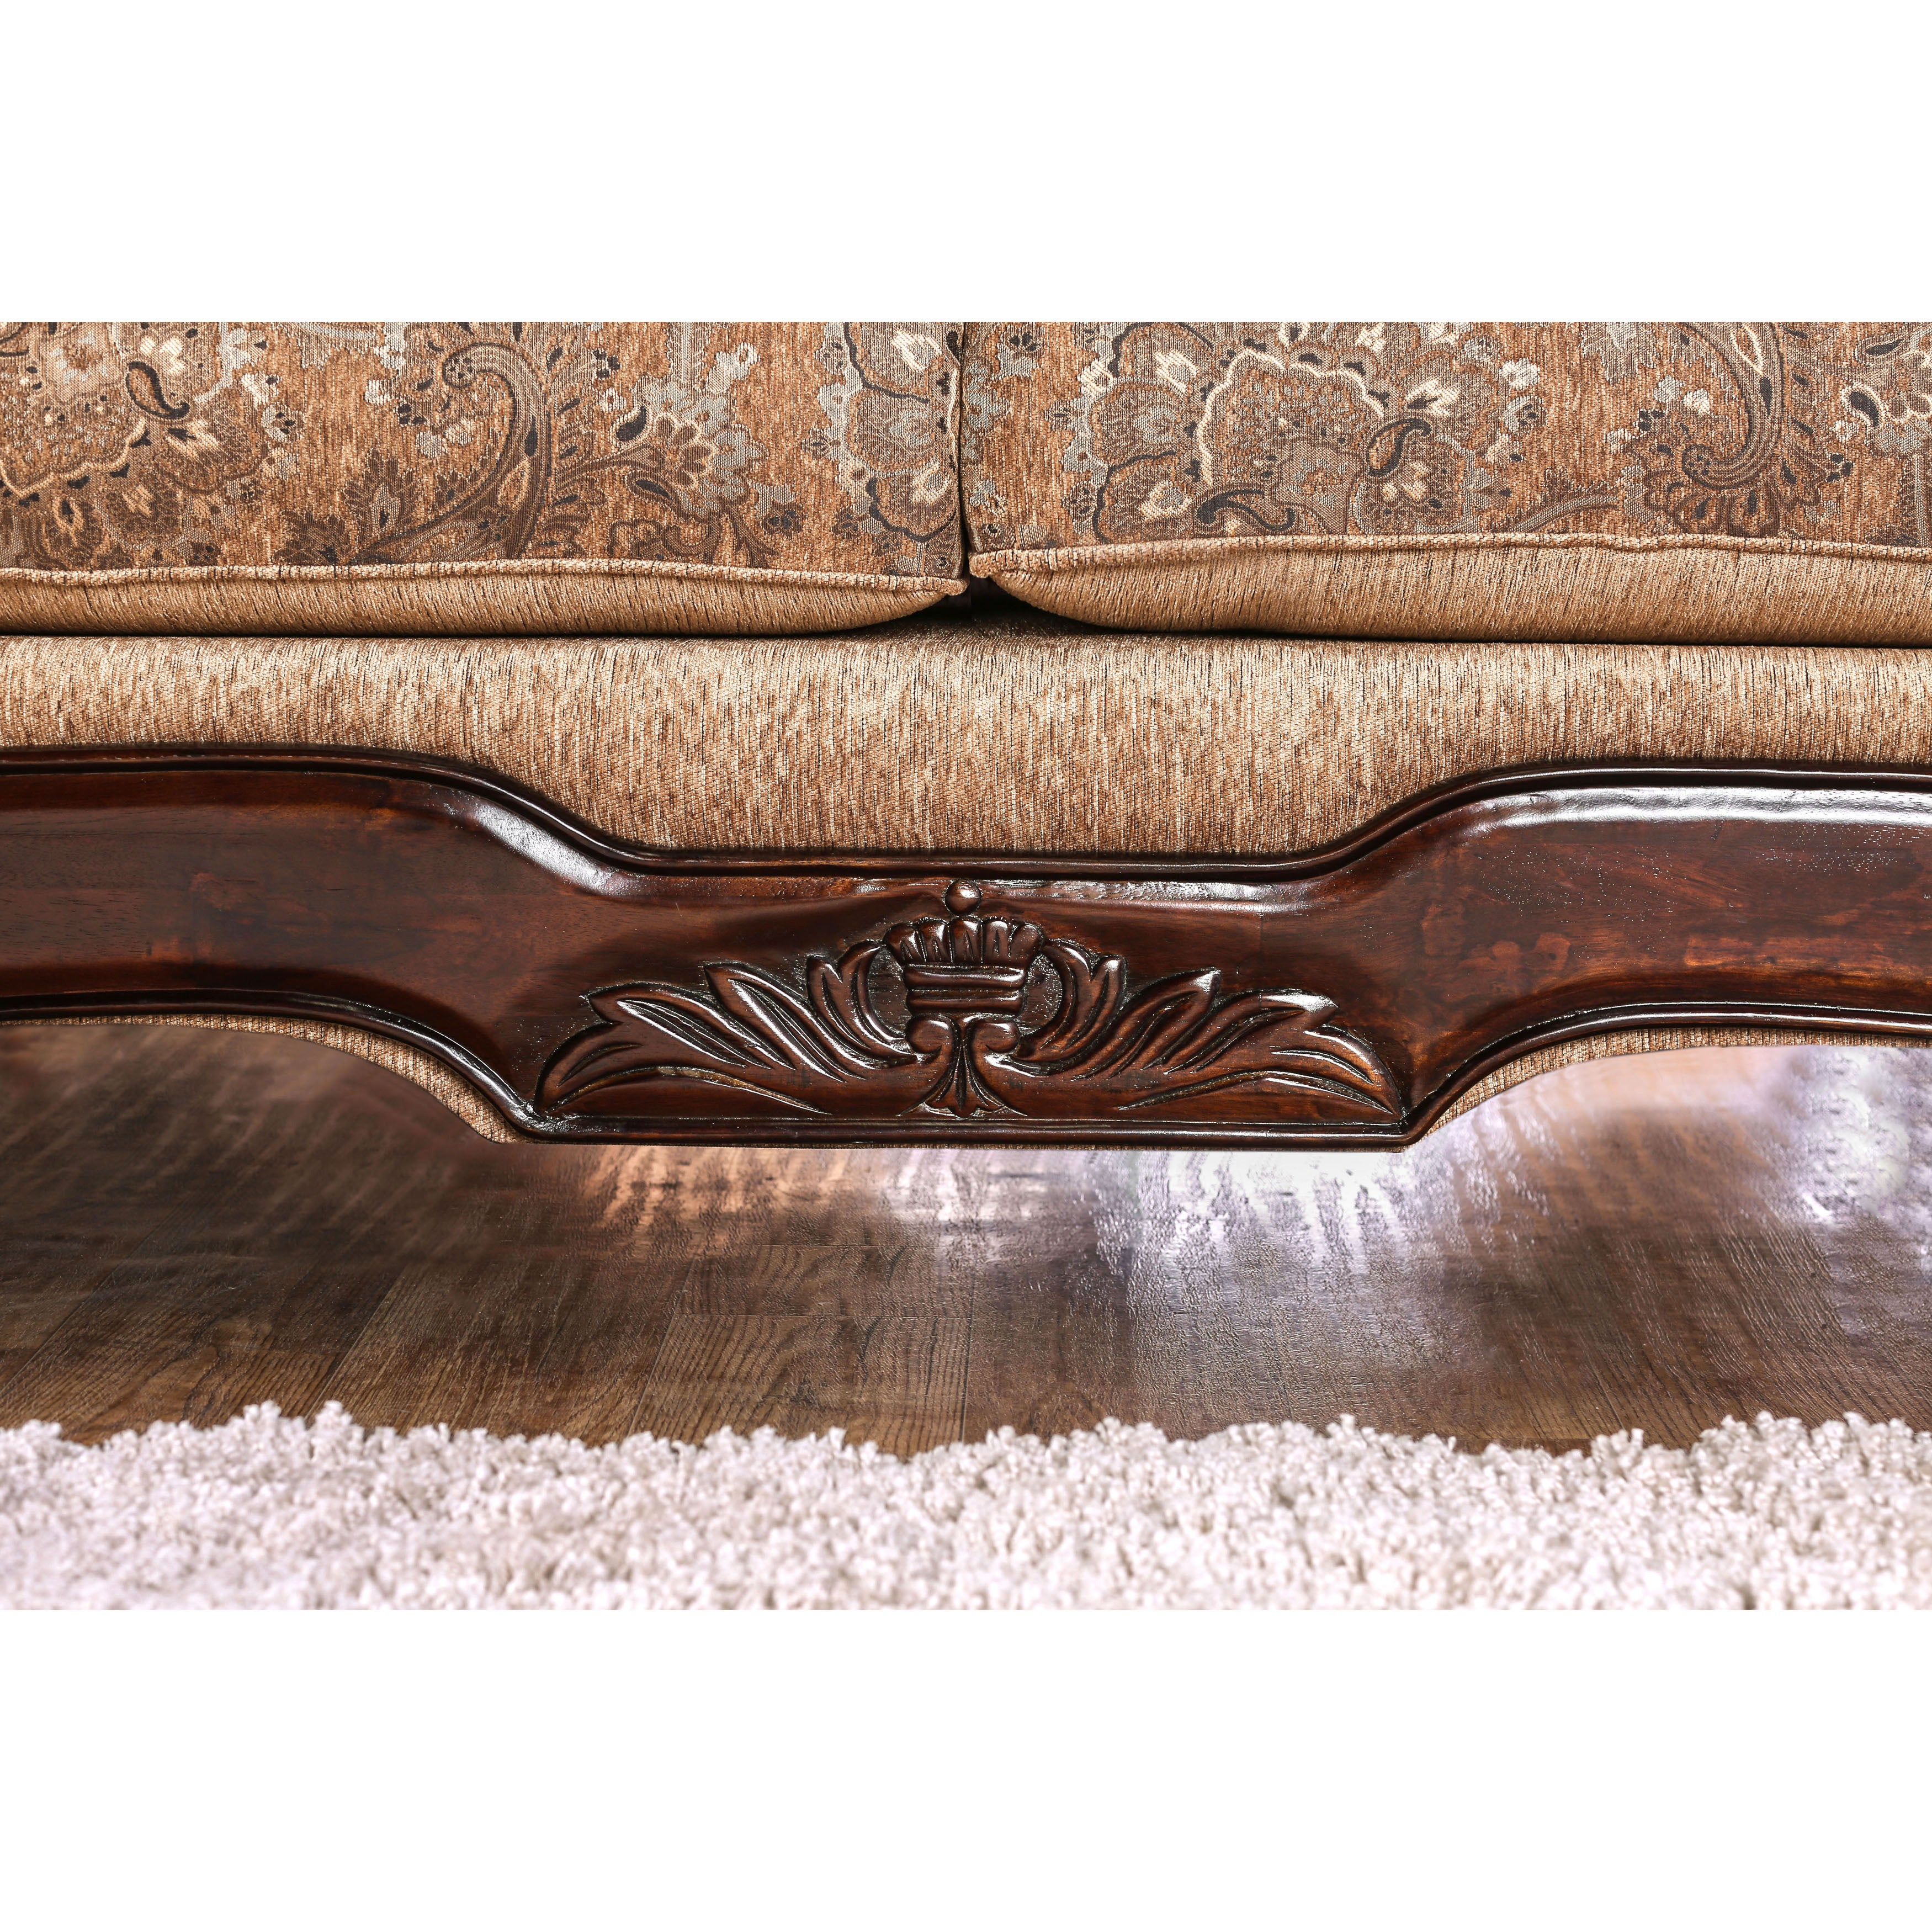 Ersa Traditional Wood Trim Chenille Fabric Gold Bronze Sofa By Furniture Of America On Free Shipping Today 14228775